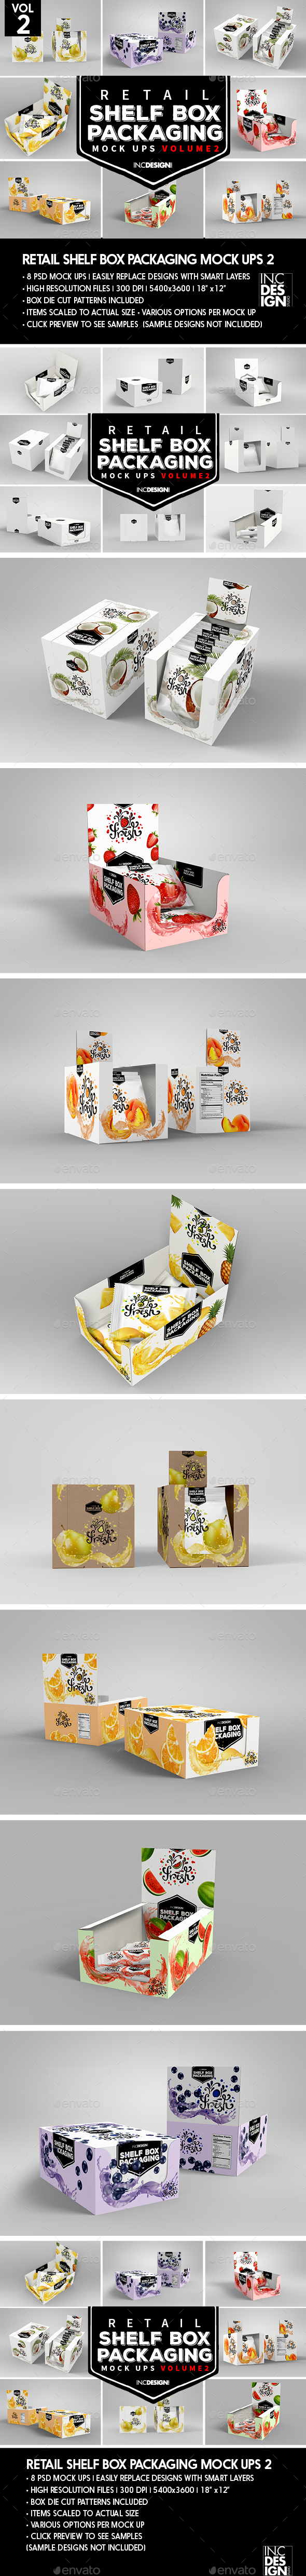 Retail Shelf Box Packaging MockUps 2